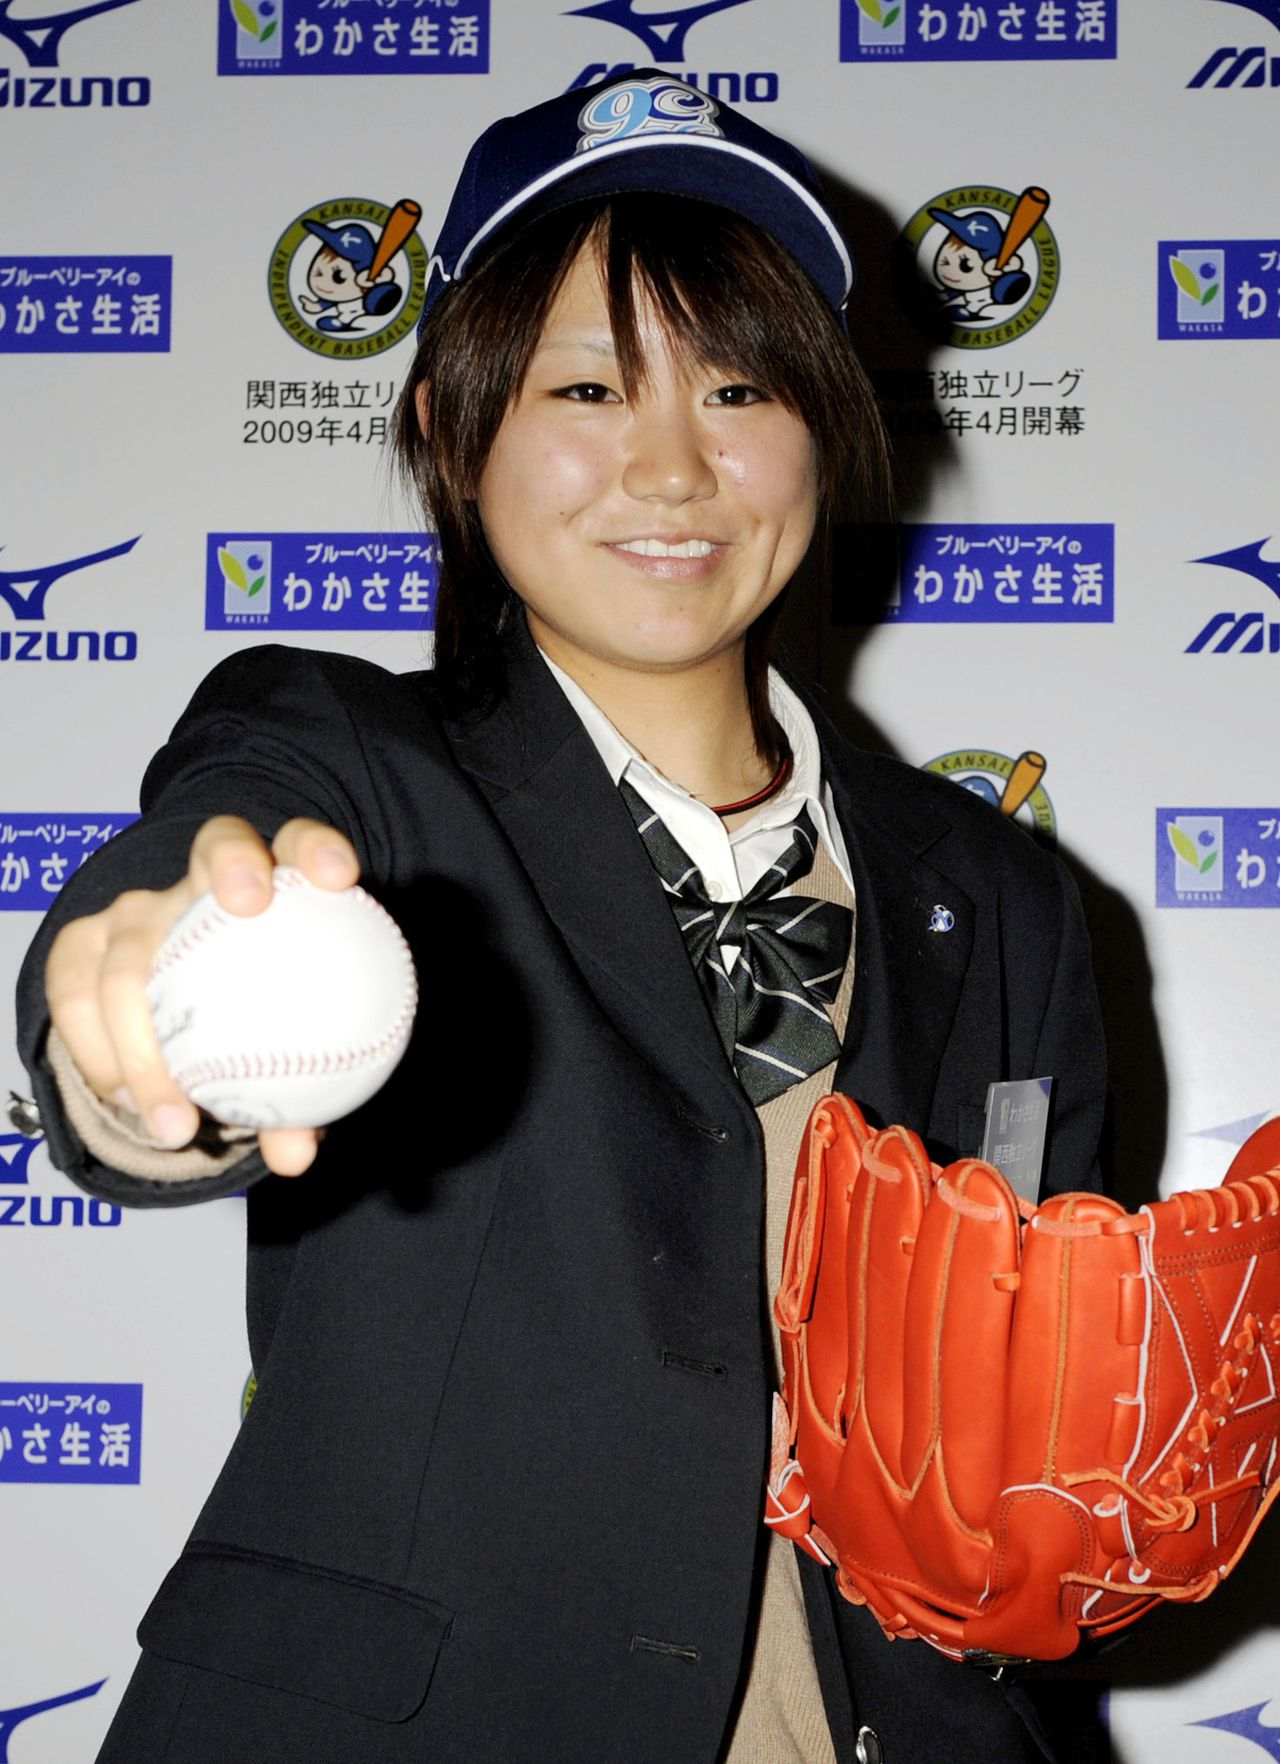 graag een keer zien pitchen. Eri Yoshida Foto AP High school student Eri Yoshida, 16, strikes a pose with a ball after being drafted by an independent league's professional team during a press conference in Osaka, western Japan, Sunday, Nov. 16, 2008. Yoshida, who throws a side-arm knuckleball, was drafted by the Kobe 9 Cruise in a new independent Japanese league that will start its first season in April. Yoshida says she wants to follow in the footsteps of Boston Red Sox knuckleballer Tim Wakefield. (AP Photo/Kyodo News) ** JAPAN OUT MANDATORY CREDIT FOR COMMERCIAL USE ONLY IN NORTH AMERICA **